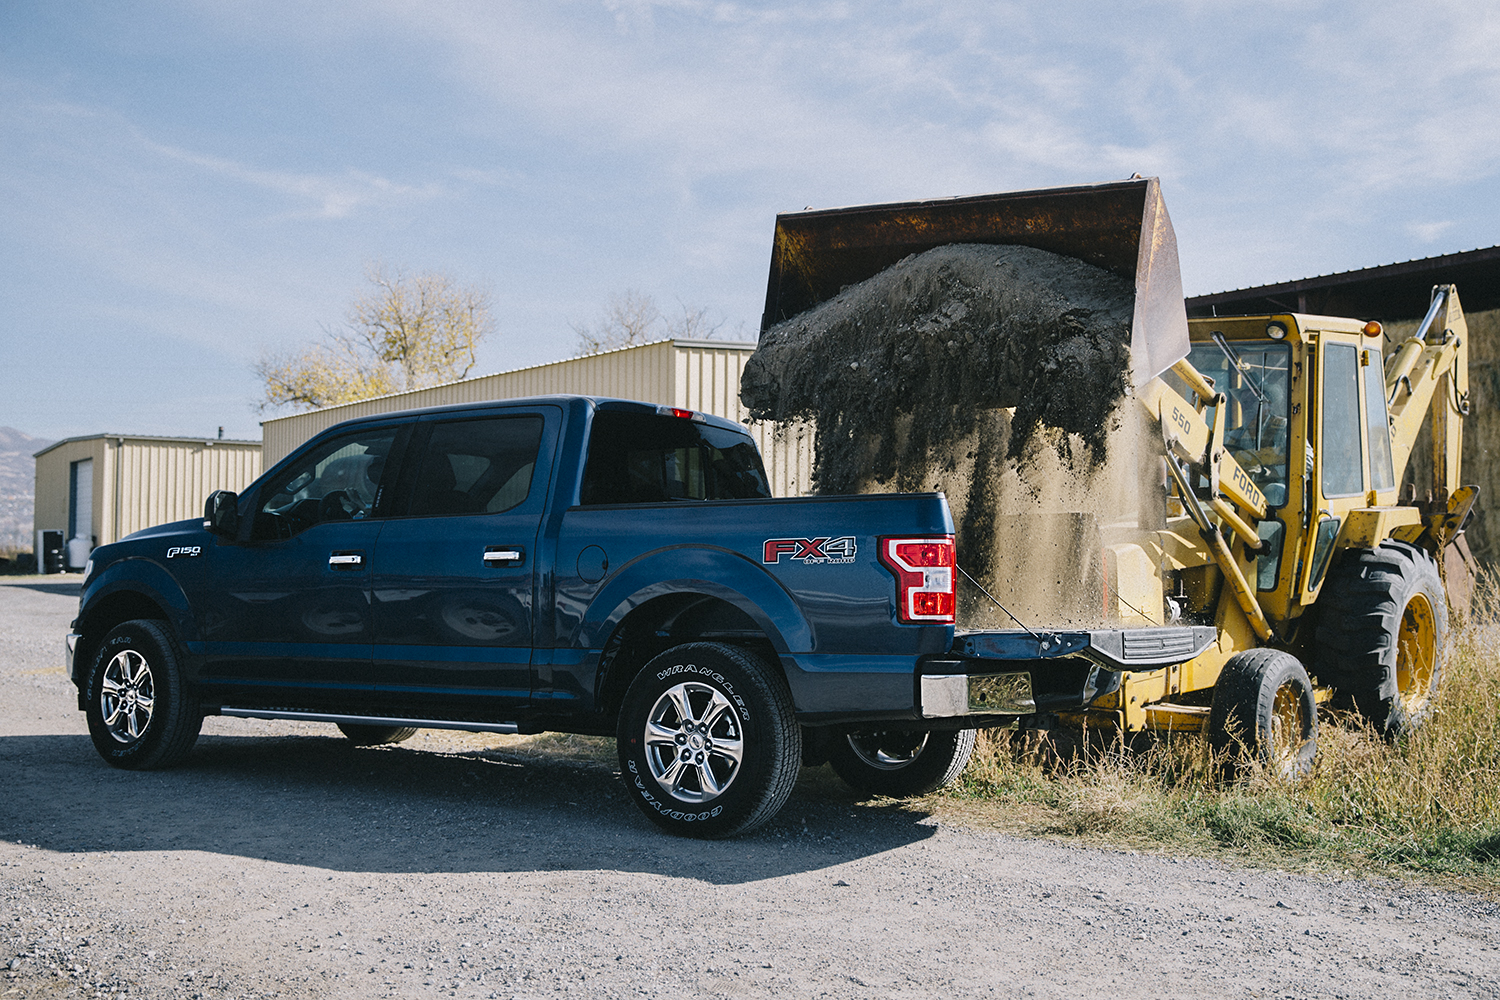 Ford F150 XLT FX4 with Tractor.jpg